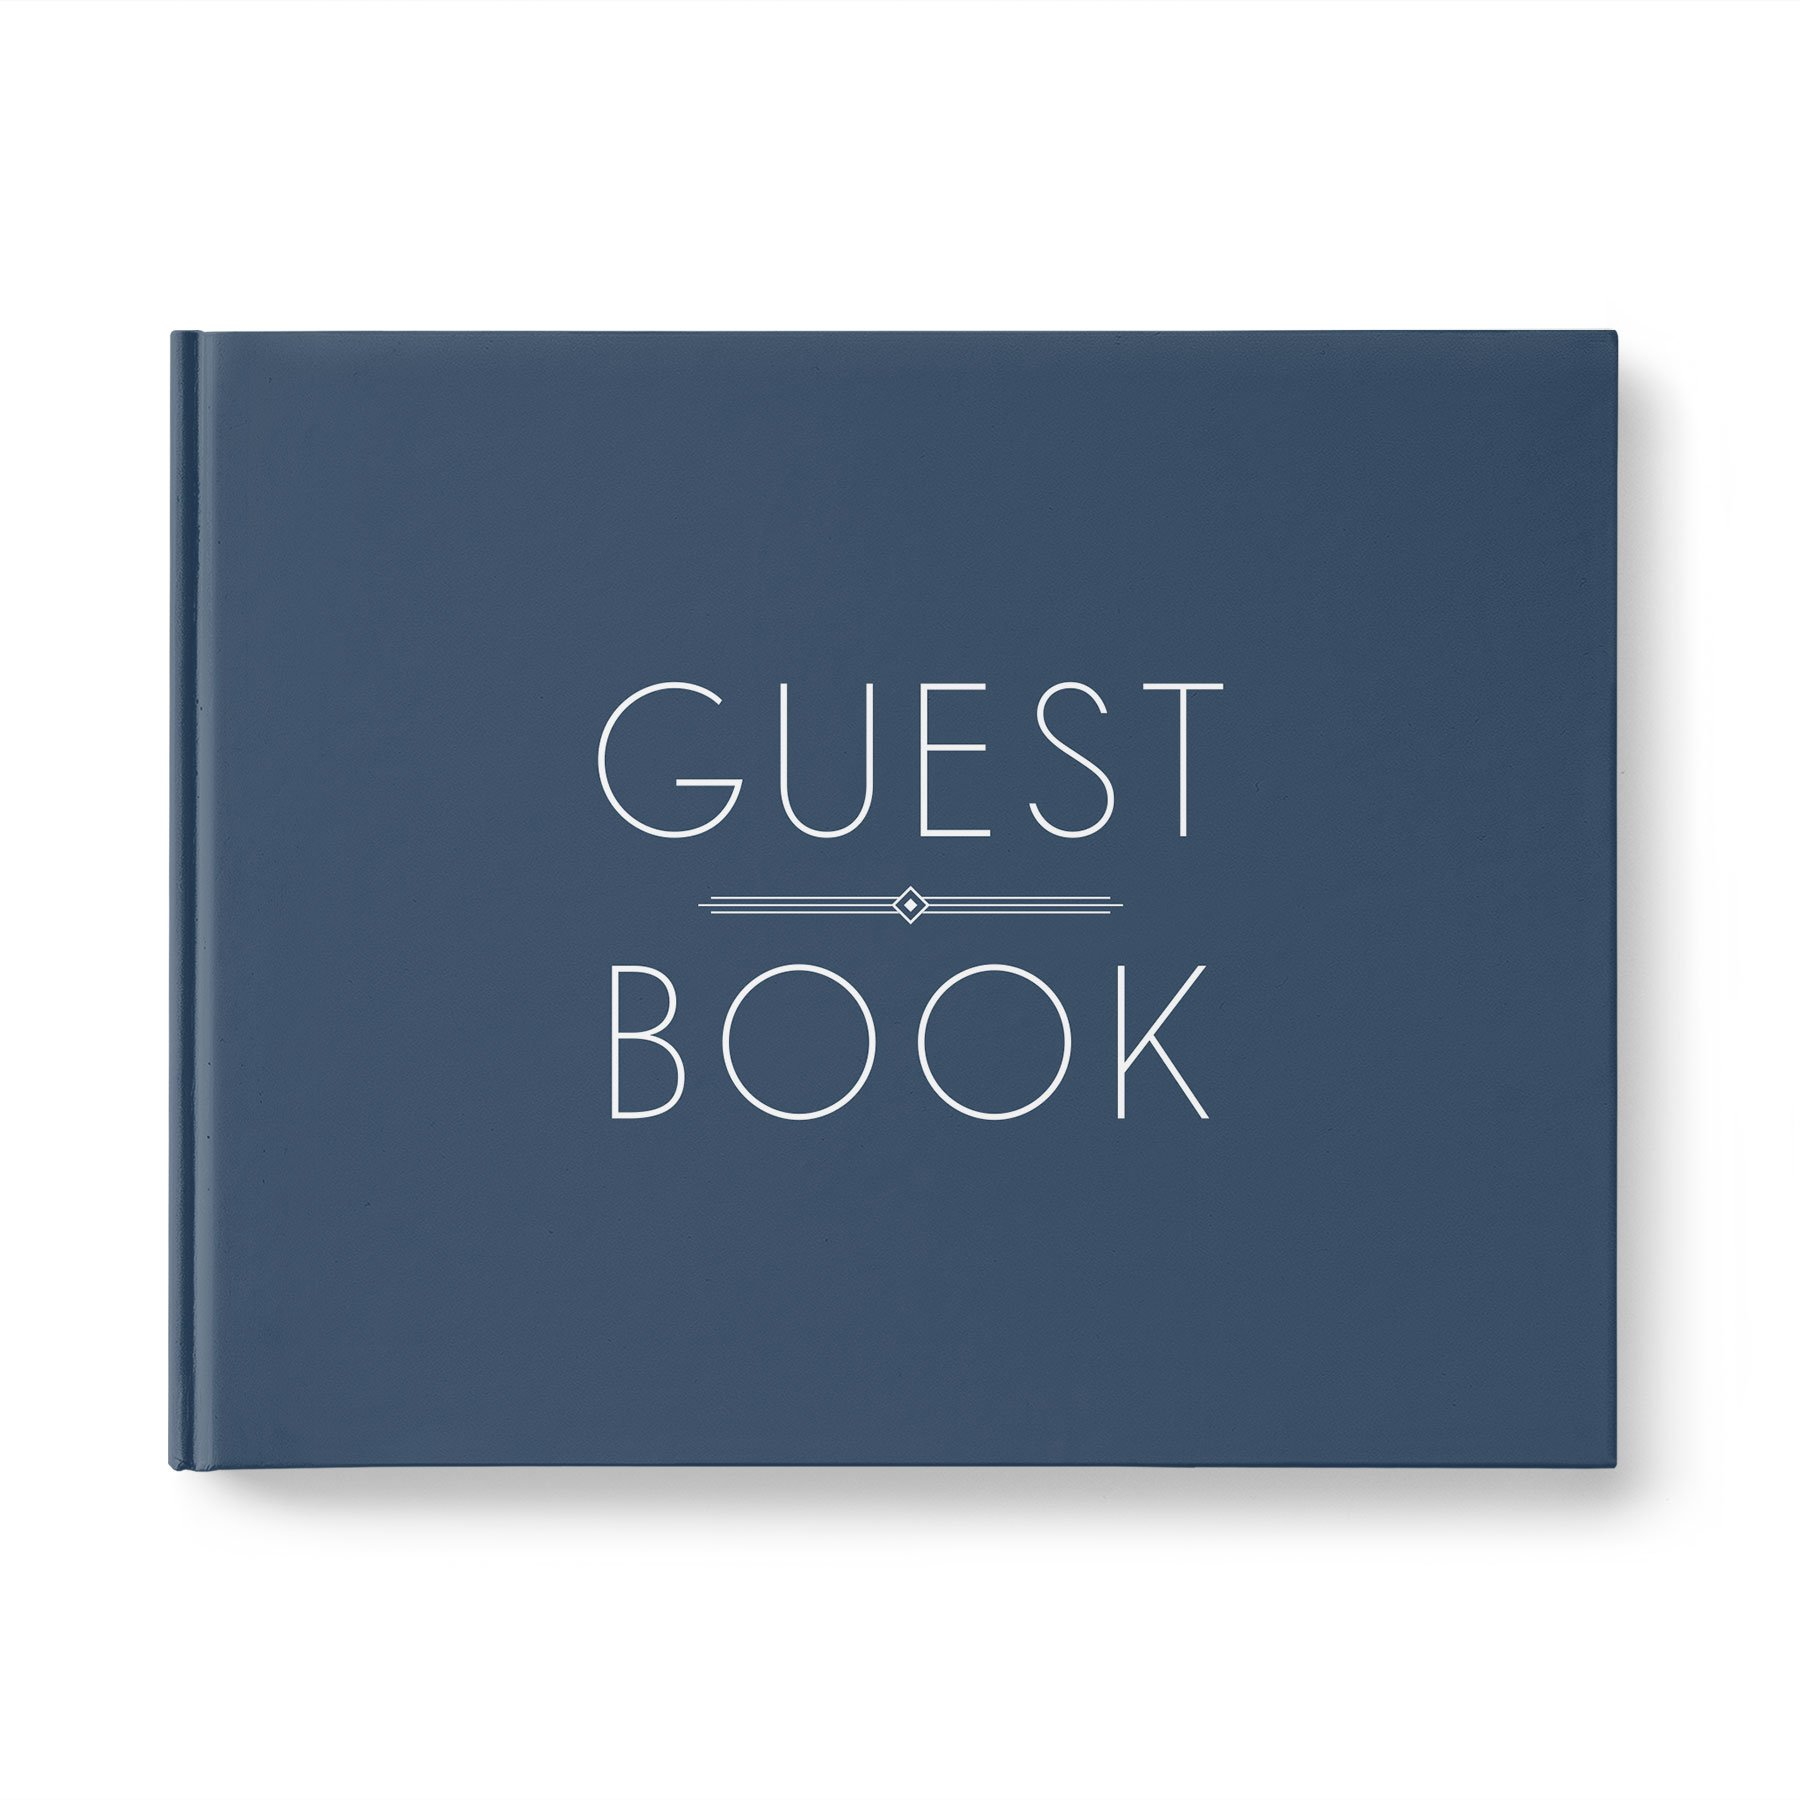 Please + Thanks Guest Book, Navy Blue Casebound Hardcover, 40 Acid-Free Blank White Interior Sheets (80 Total Pages), 10.9 x 8.75 Inches